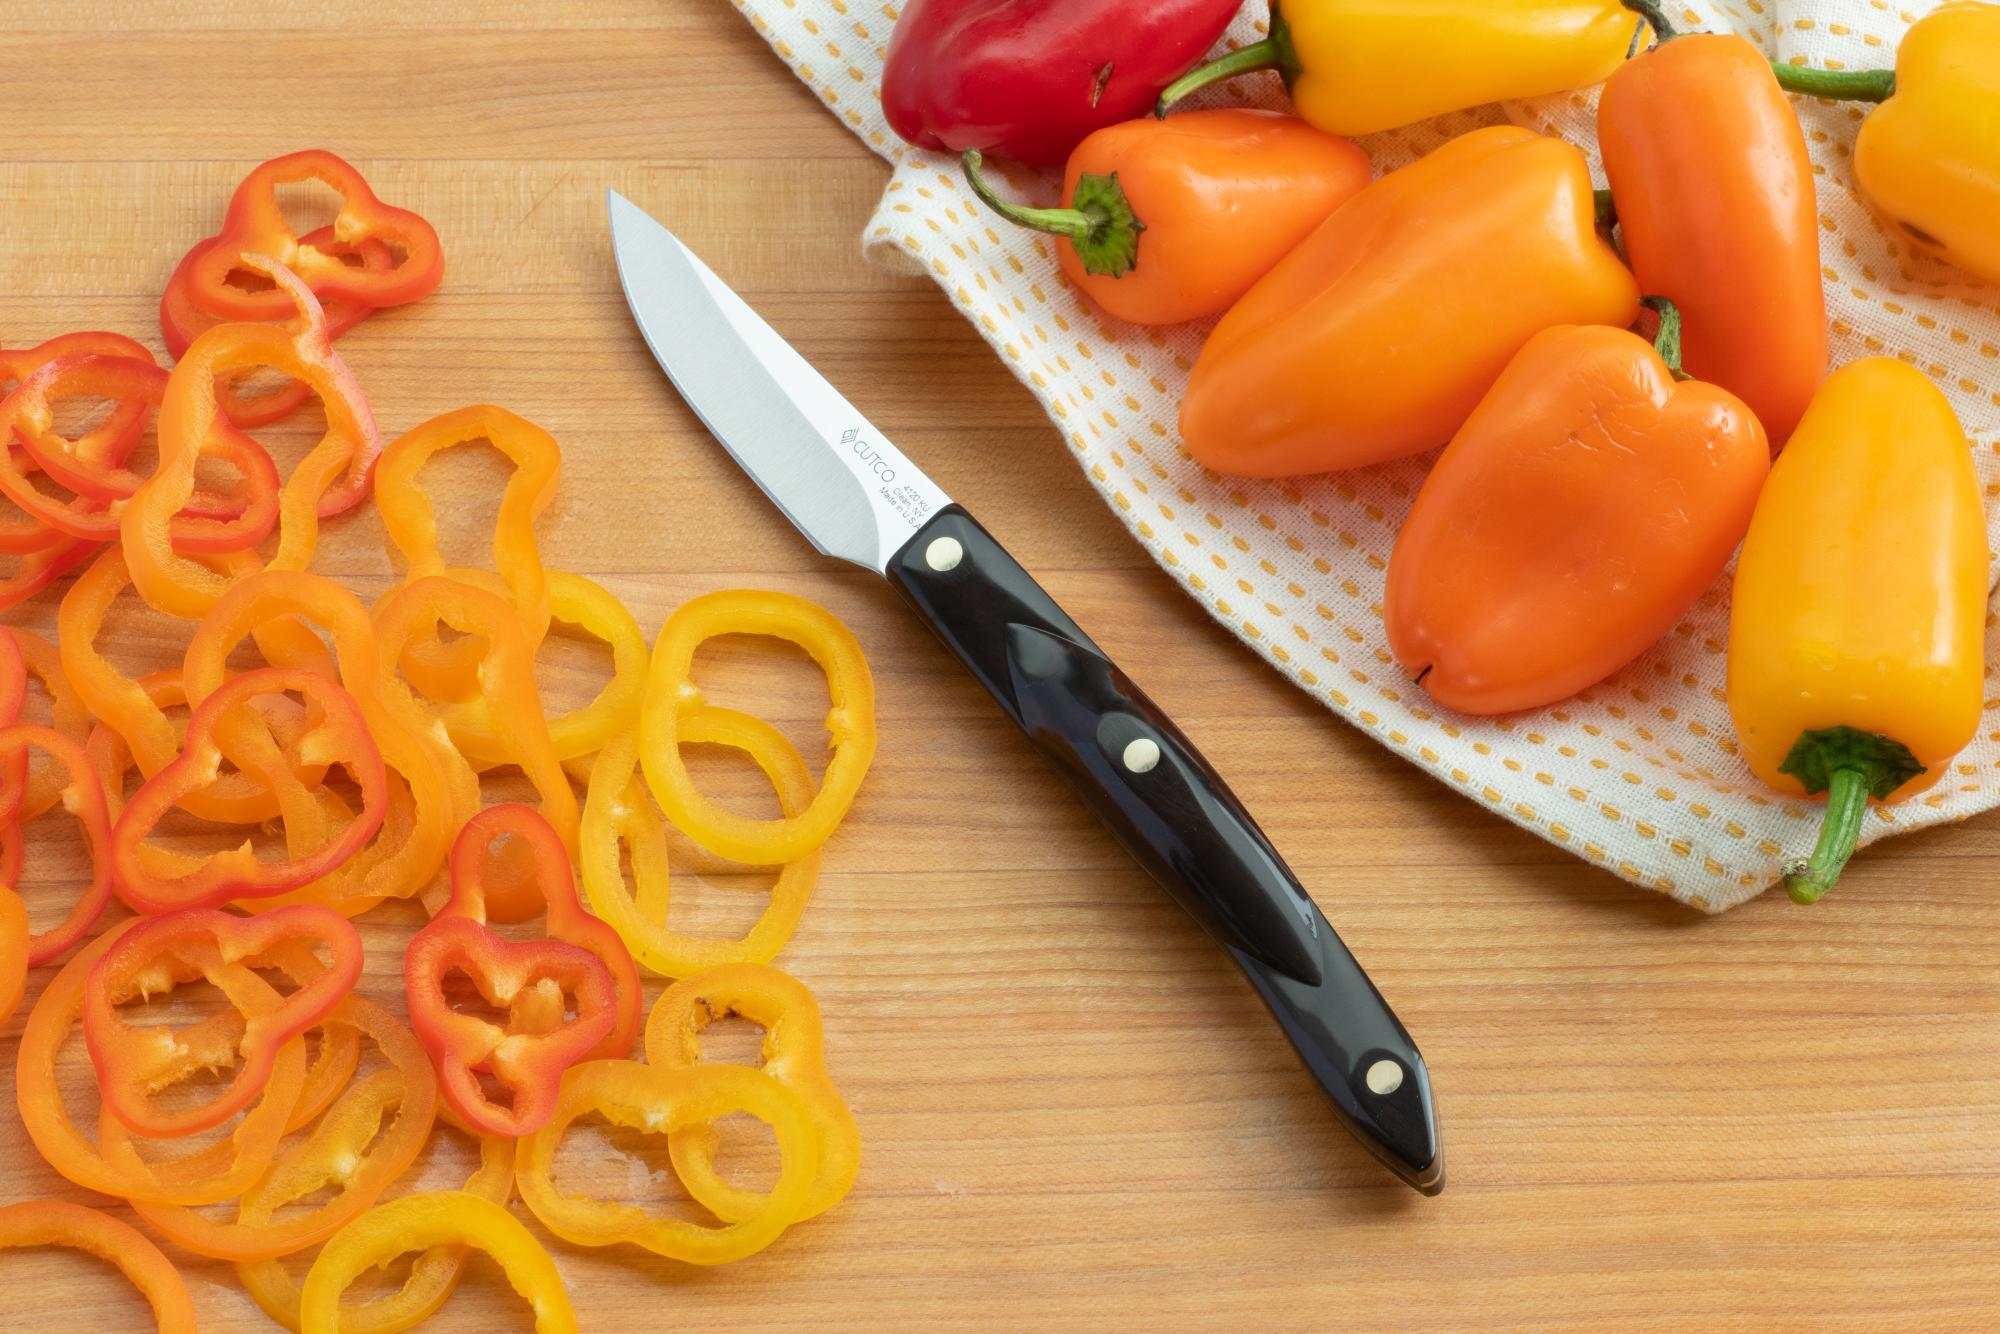 Using the 3 Inch Gourmet Paring knife to slice the mini bell peppers.